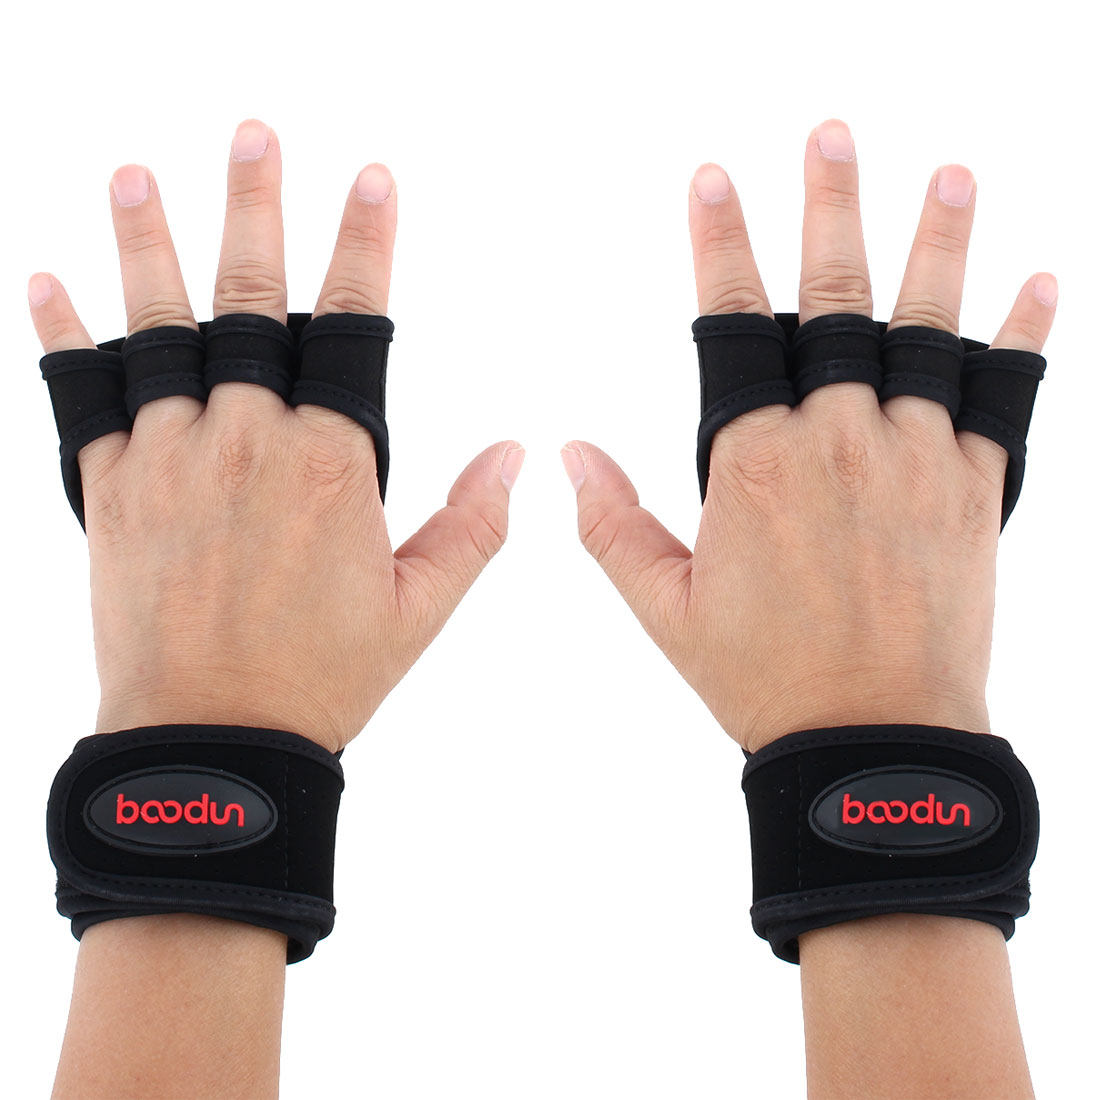 BOODUN Authorized Indoor Workout Training Sports Adjustable Anti Slip Fitness Gloves Black M Size Pair